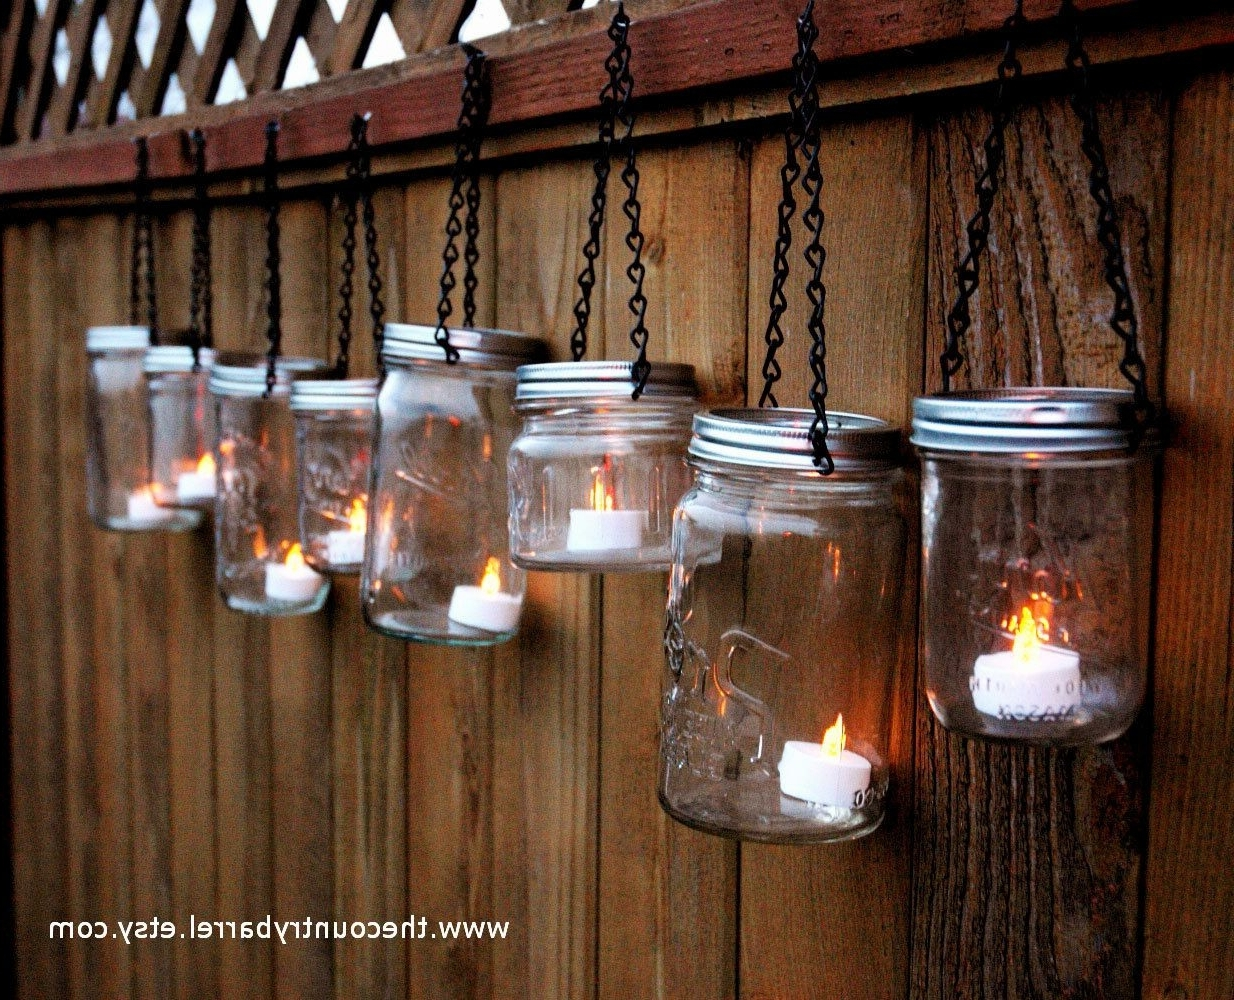 Famous Outdoor Hanging Tea Lights In Mason Jar Lanterns Hanging Tea Lightthecountrybarrel On Etsy (View 8 of 20)